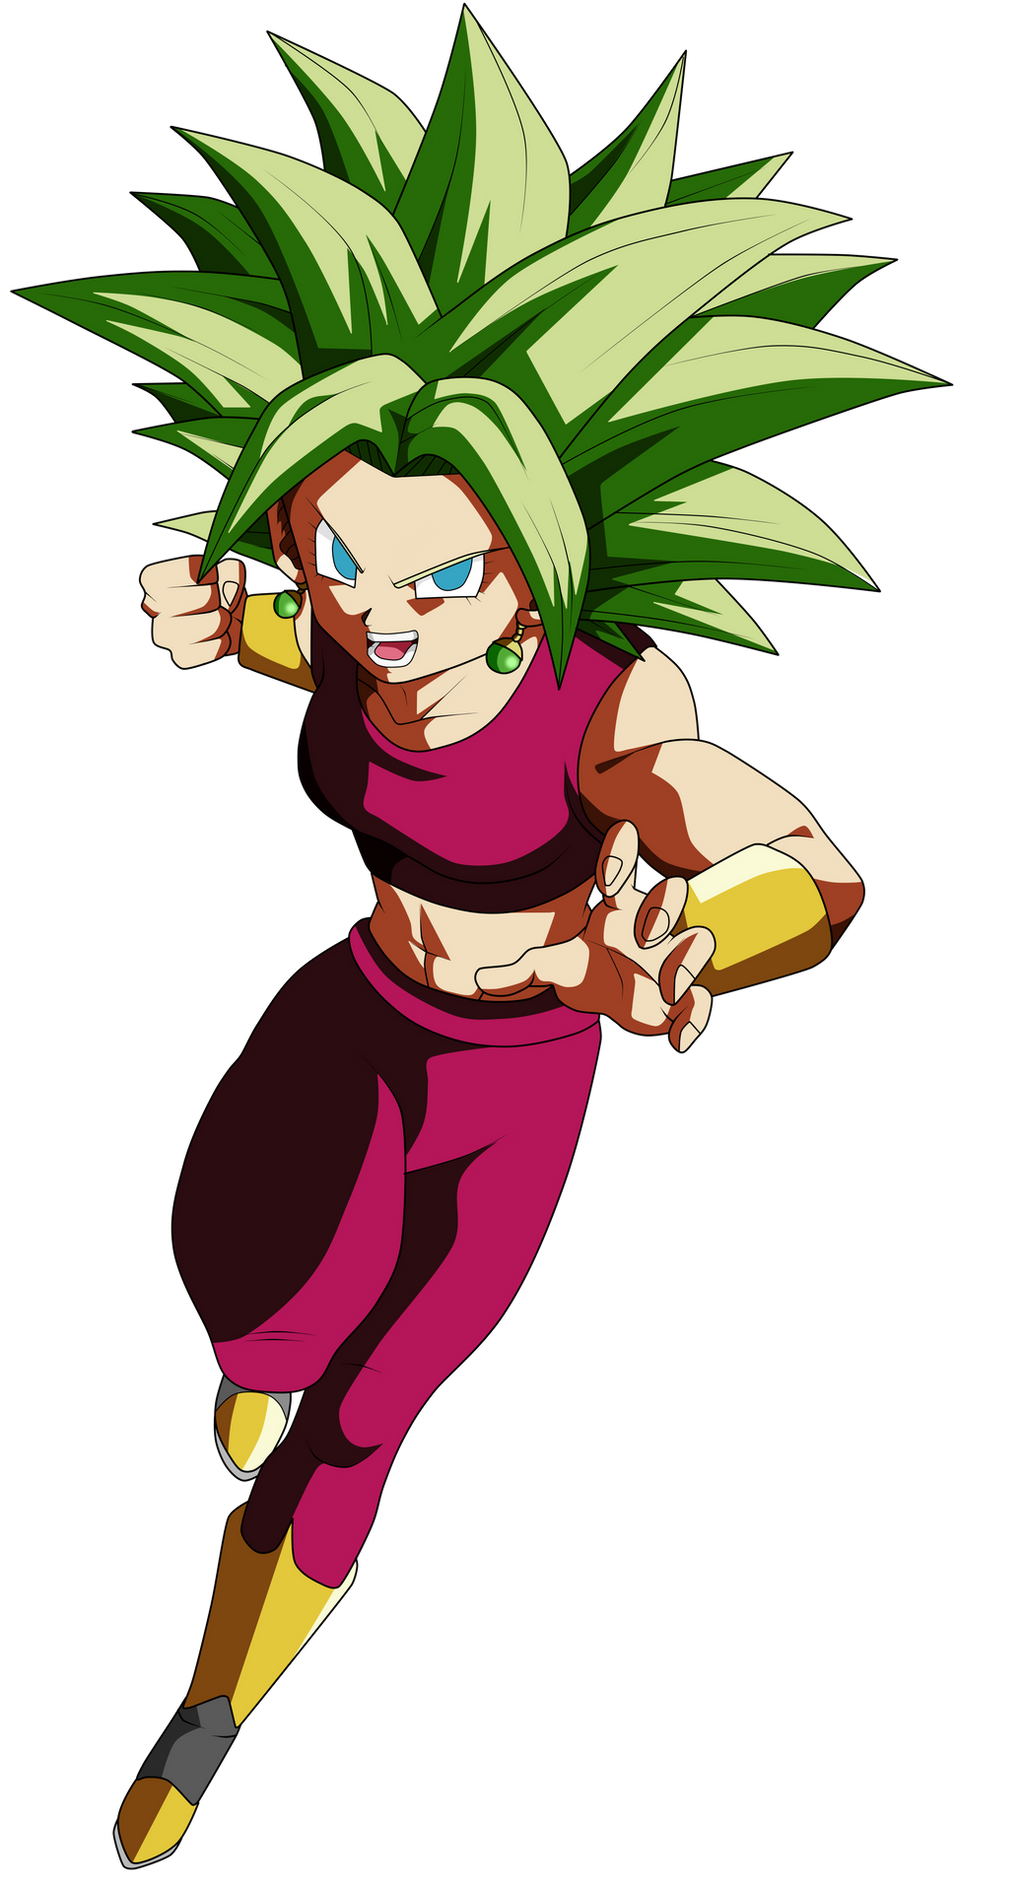 Kefla titjob dragon ball super